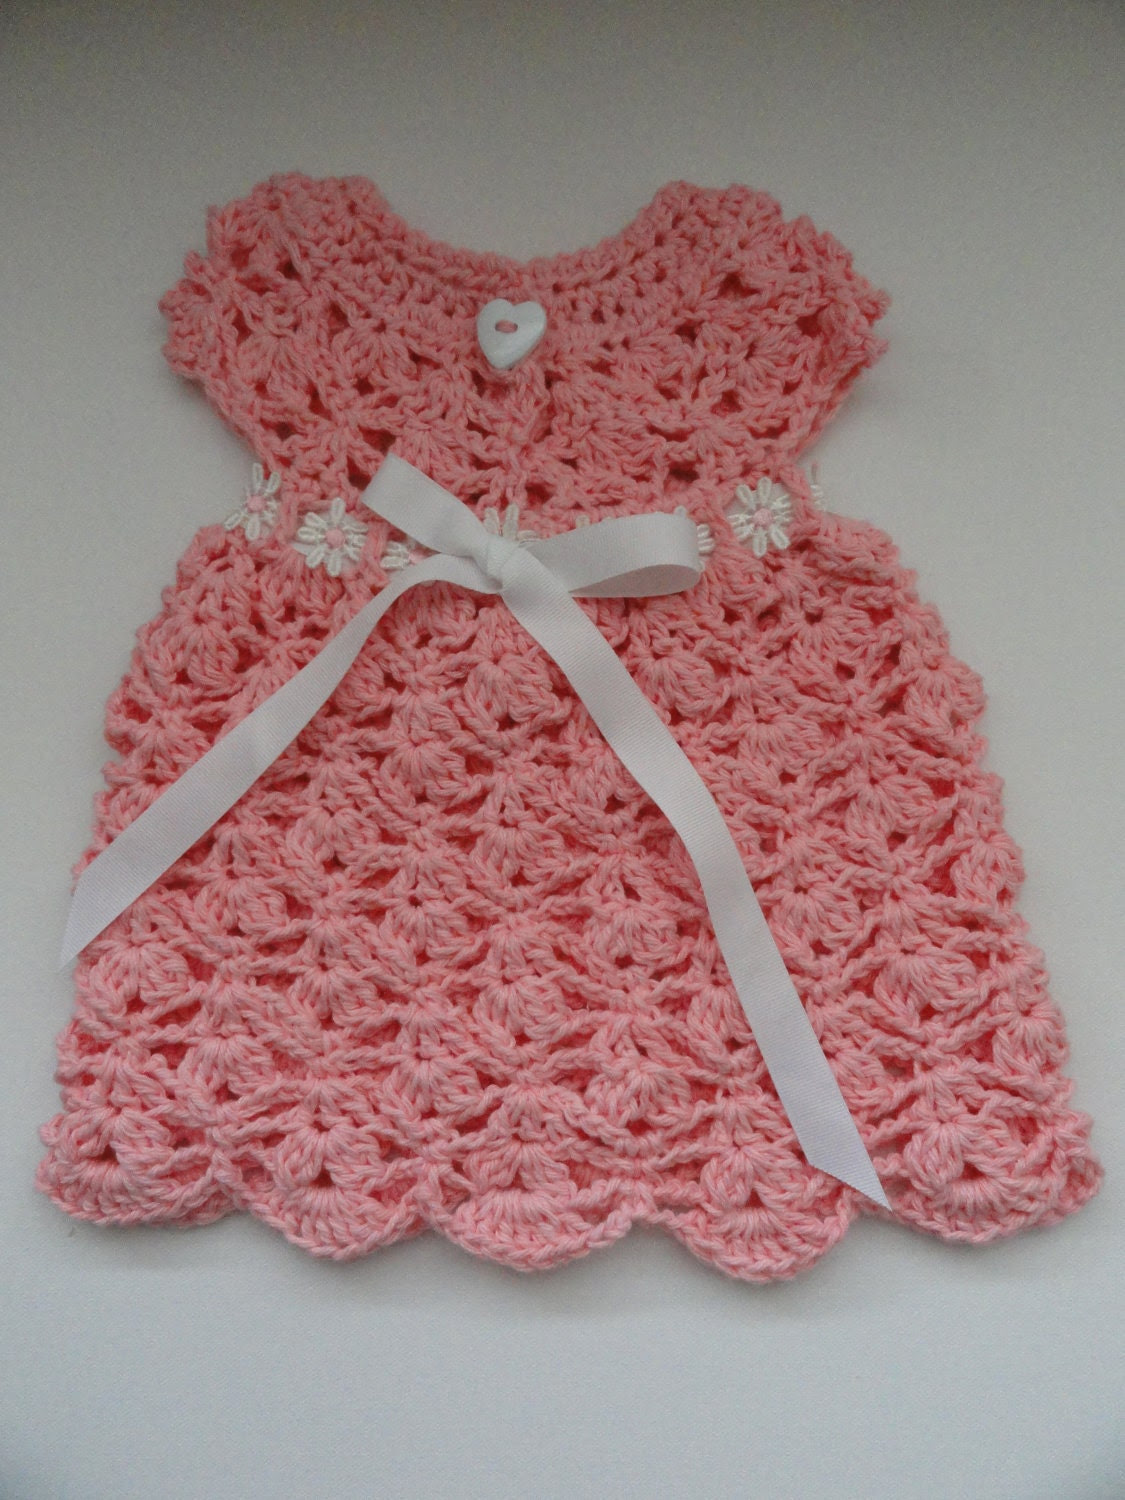 Fast and Easy Cluster Dress Crochet Pattern Sizes Newborn and 0-3 Months